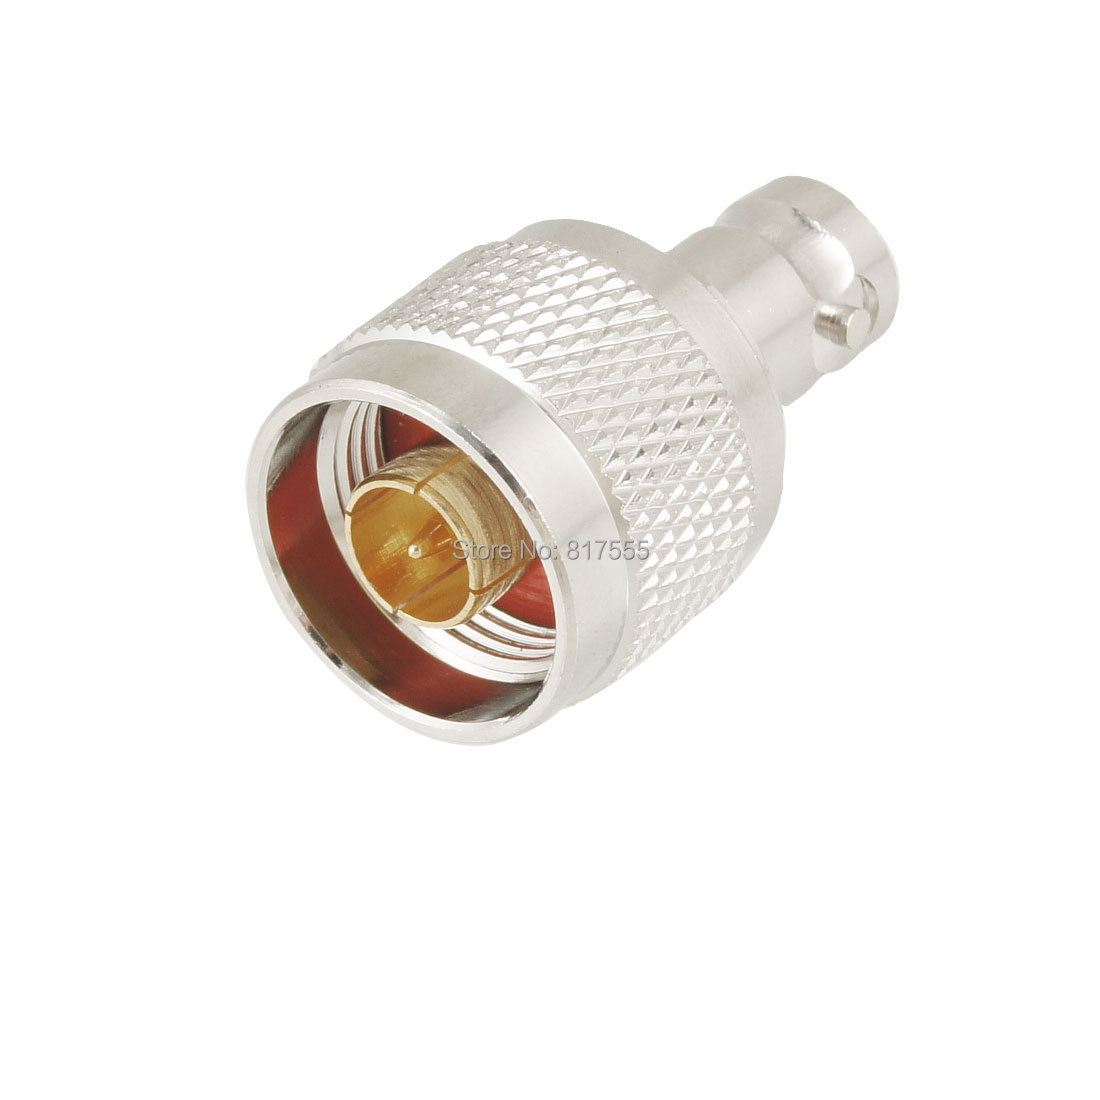 N Male Plug to BNC Female Plug Straight Coaxial Cable Connector Discount 50(China (Mainland))